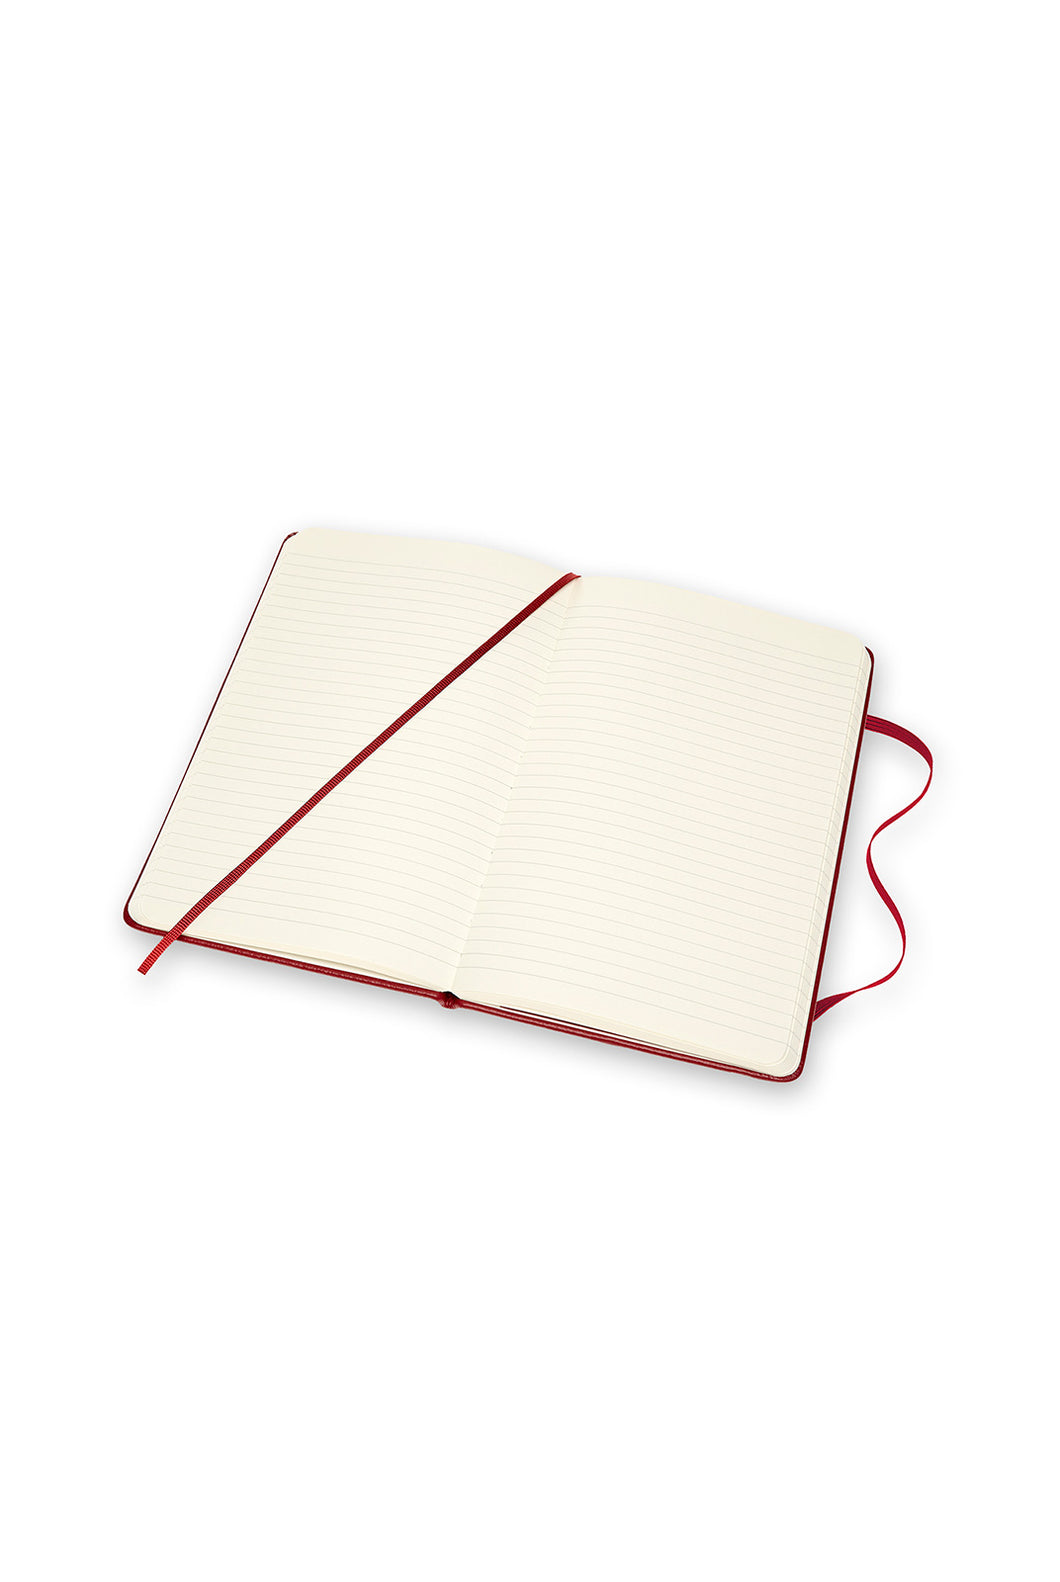 Moleskine - Limited Edition Classic Leather Soft Cover Notebook - Ruled - Large - Bordeaux Red